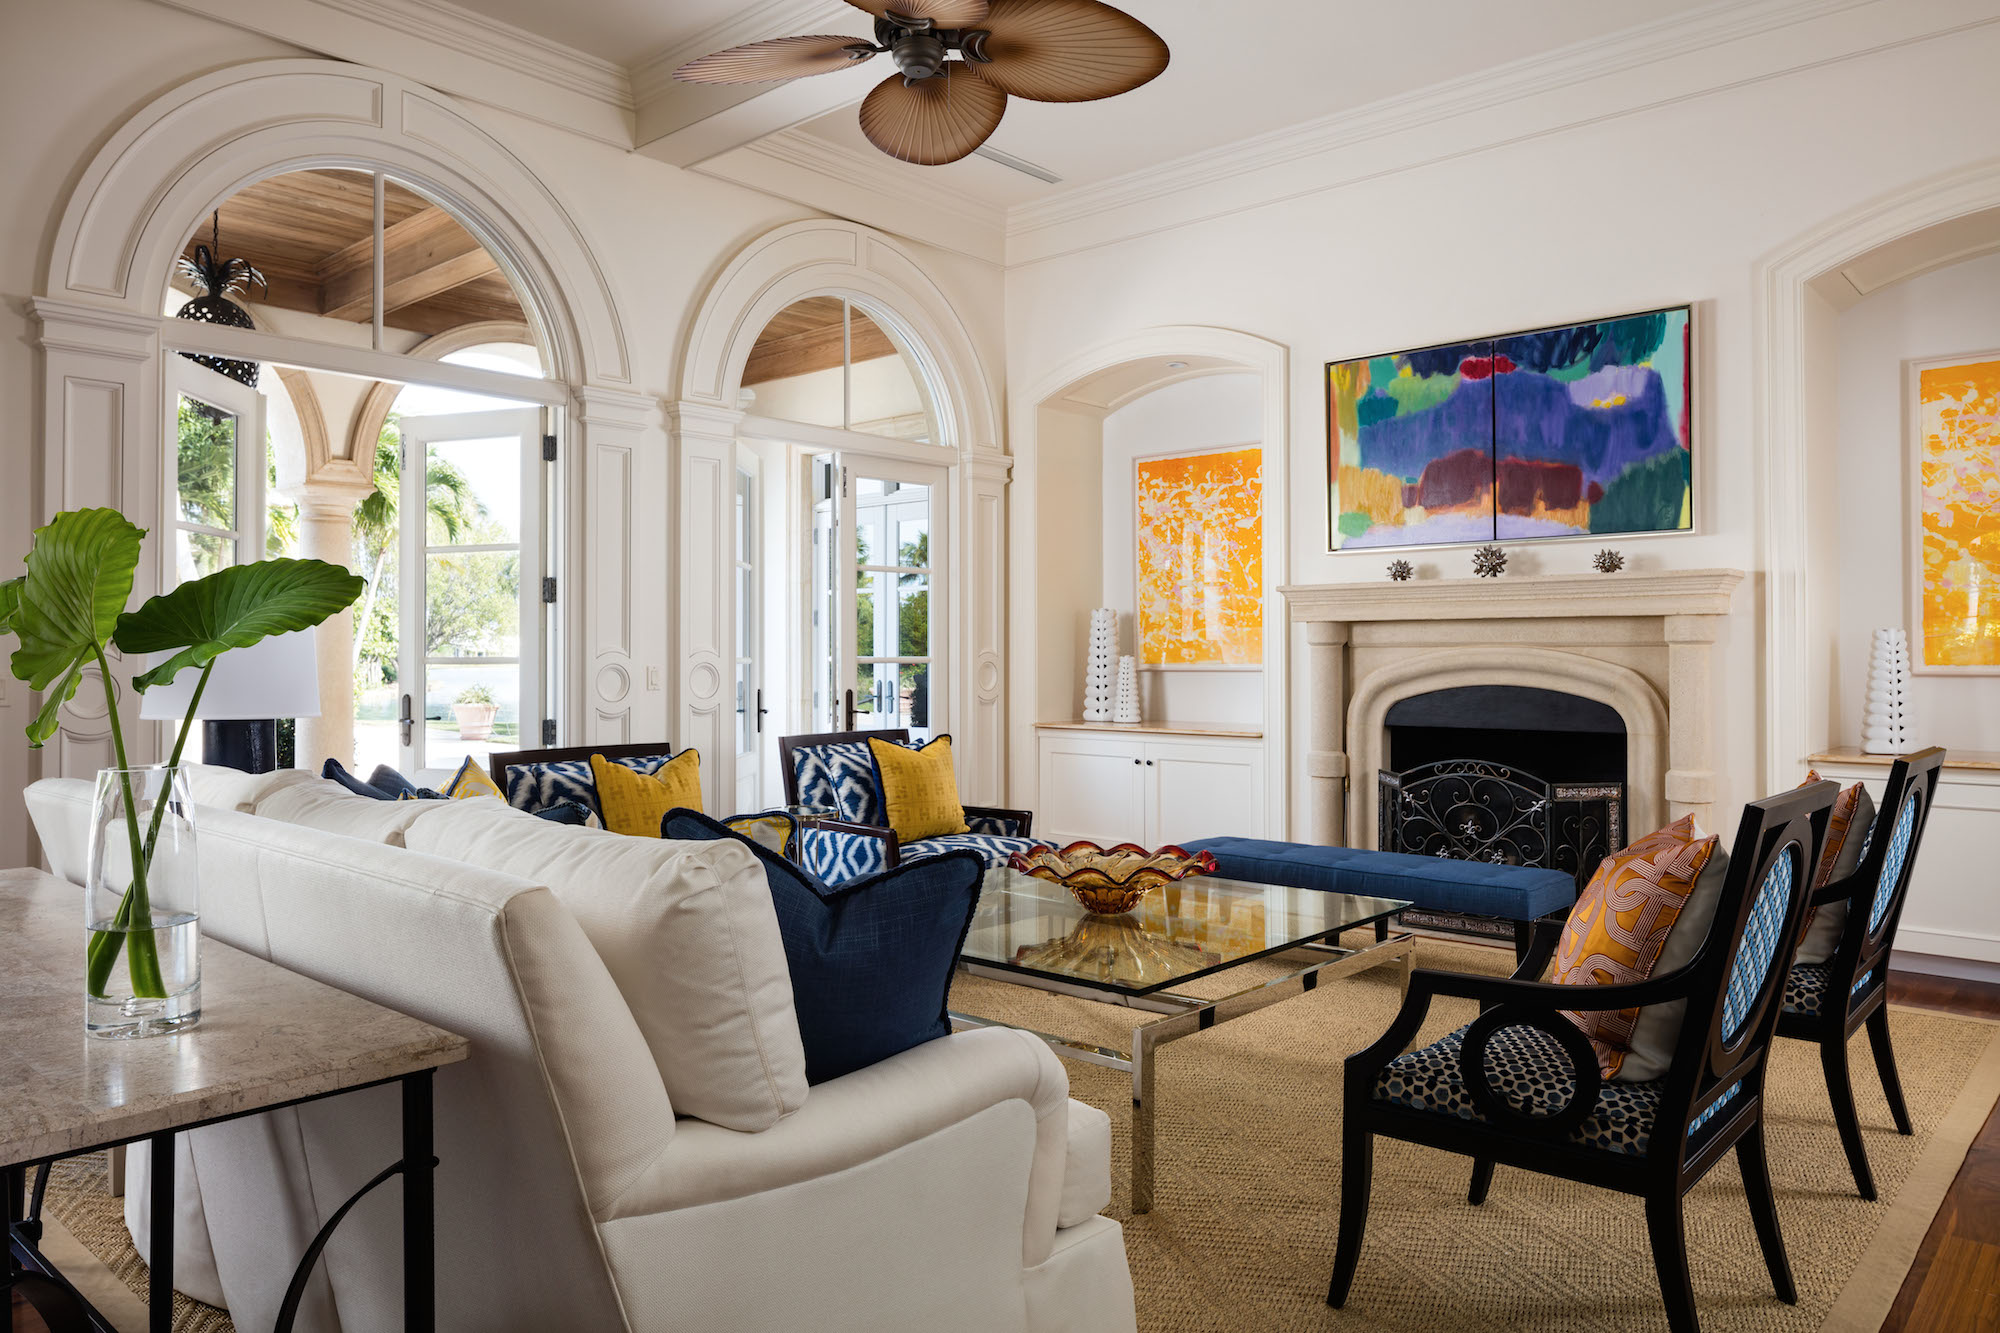 Designer Gil Walsh used a bright white backdrop and a natural rug to let bold artwork and colorful textiles shine in this airy home in North Palm Beach.